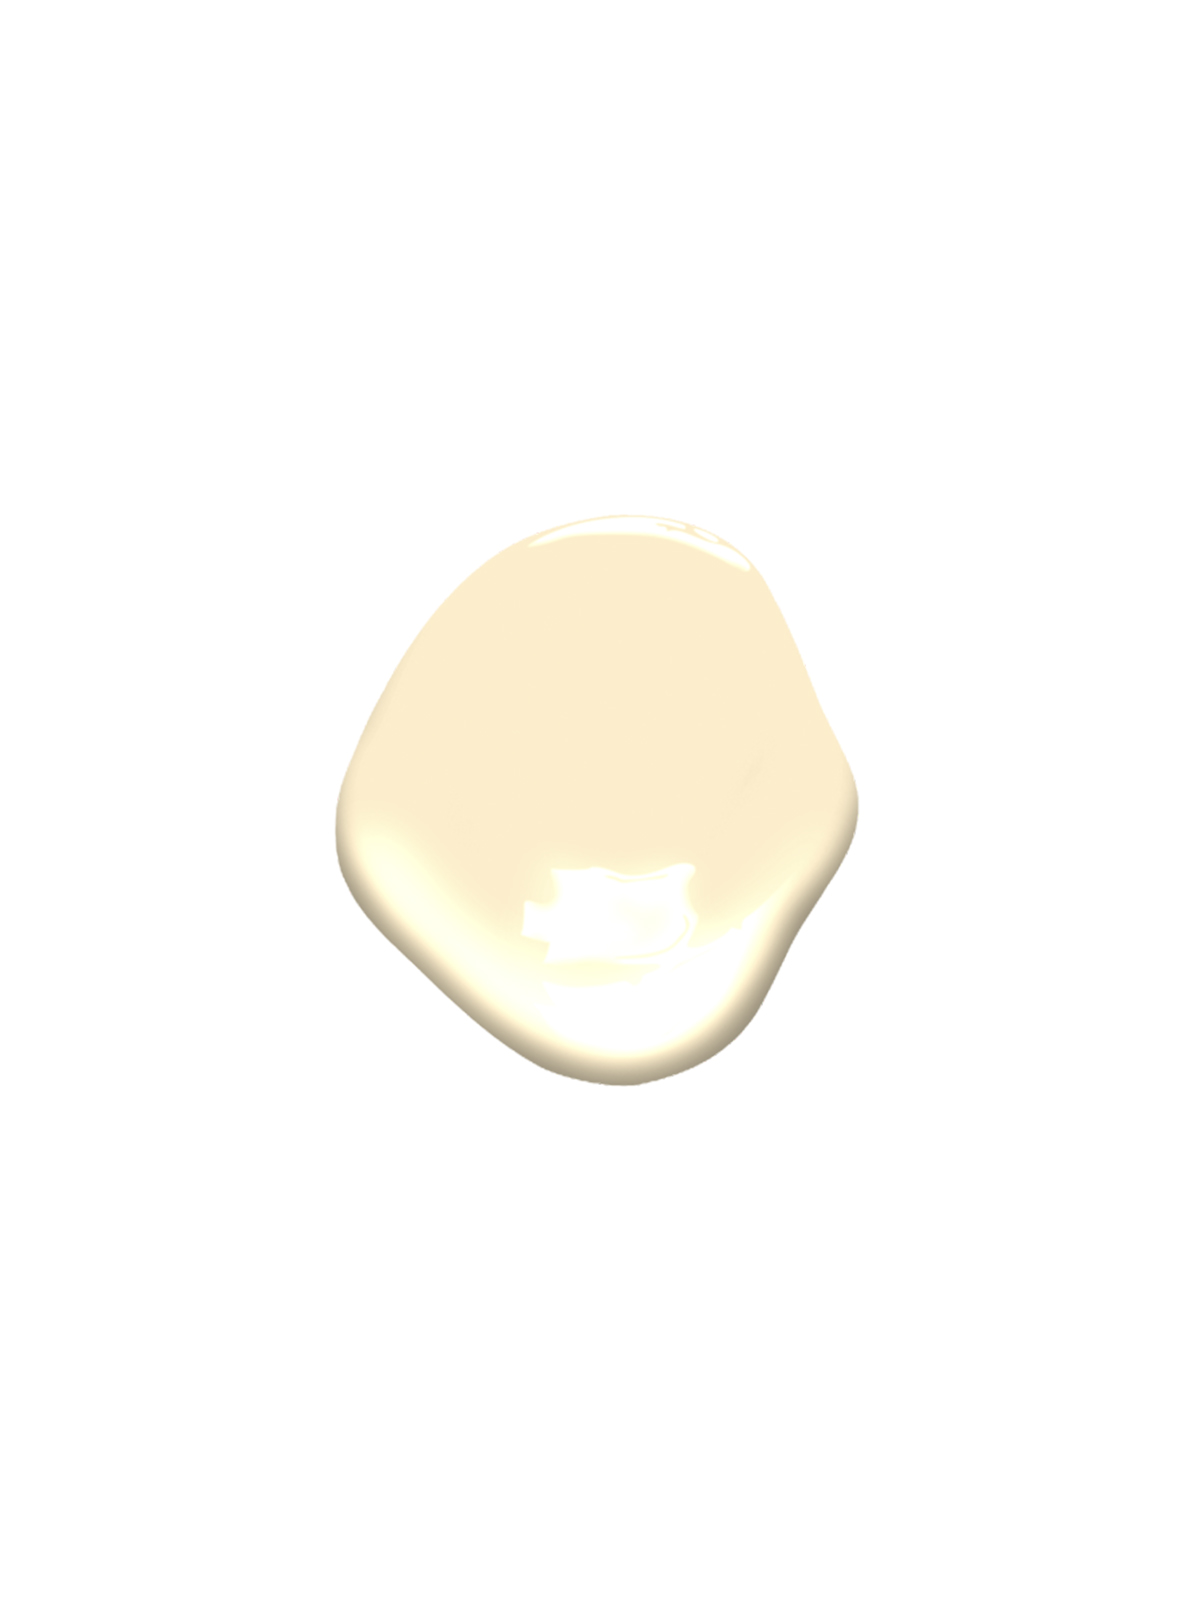 Ceiling Paint Color, Pale Daffodil Yellow